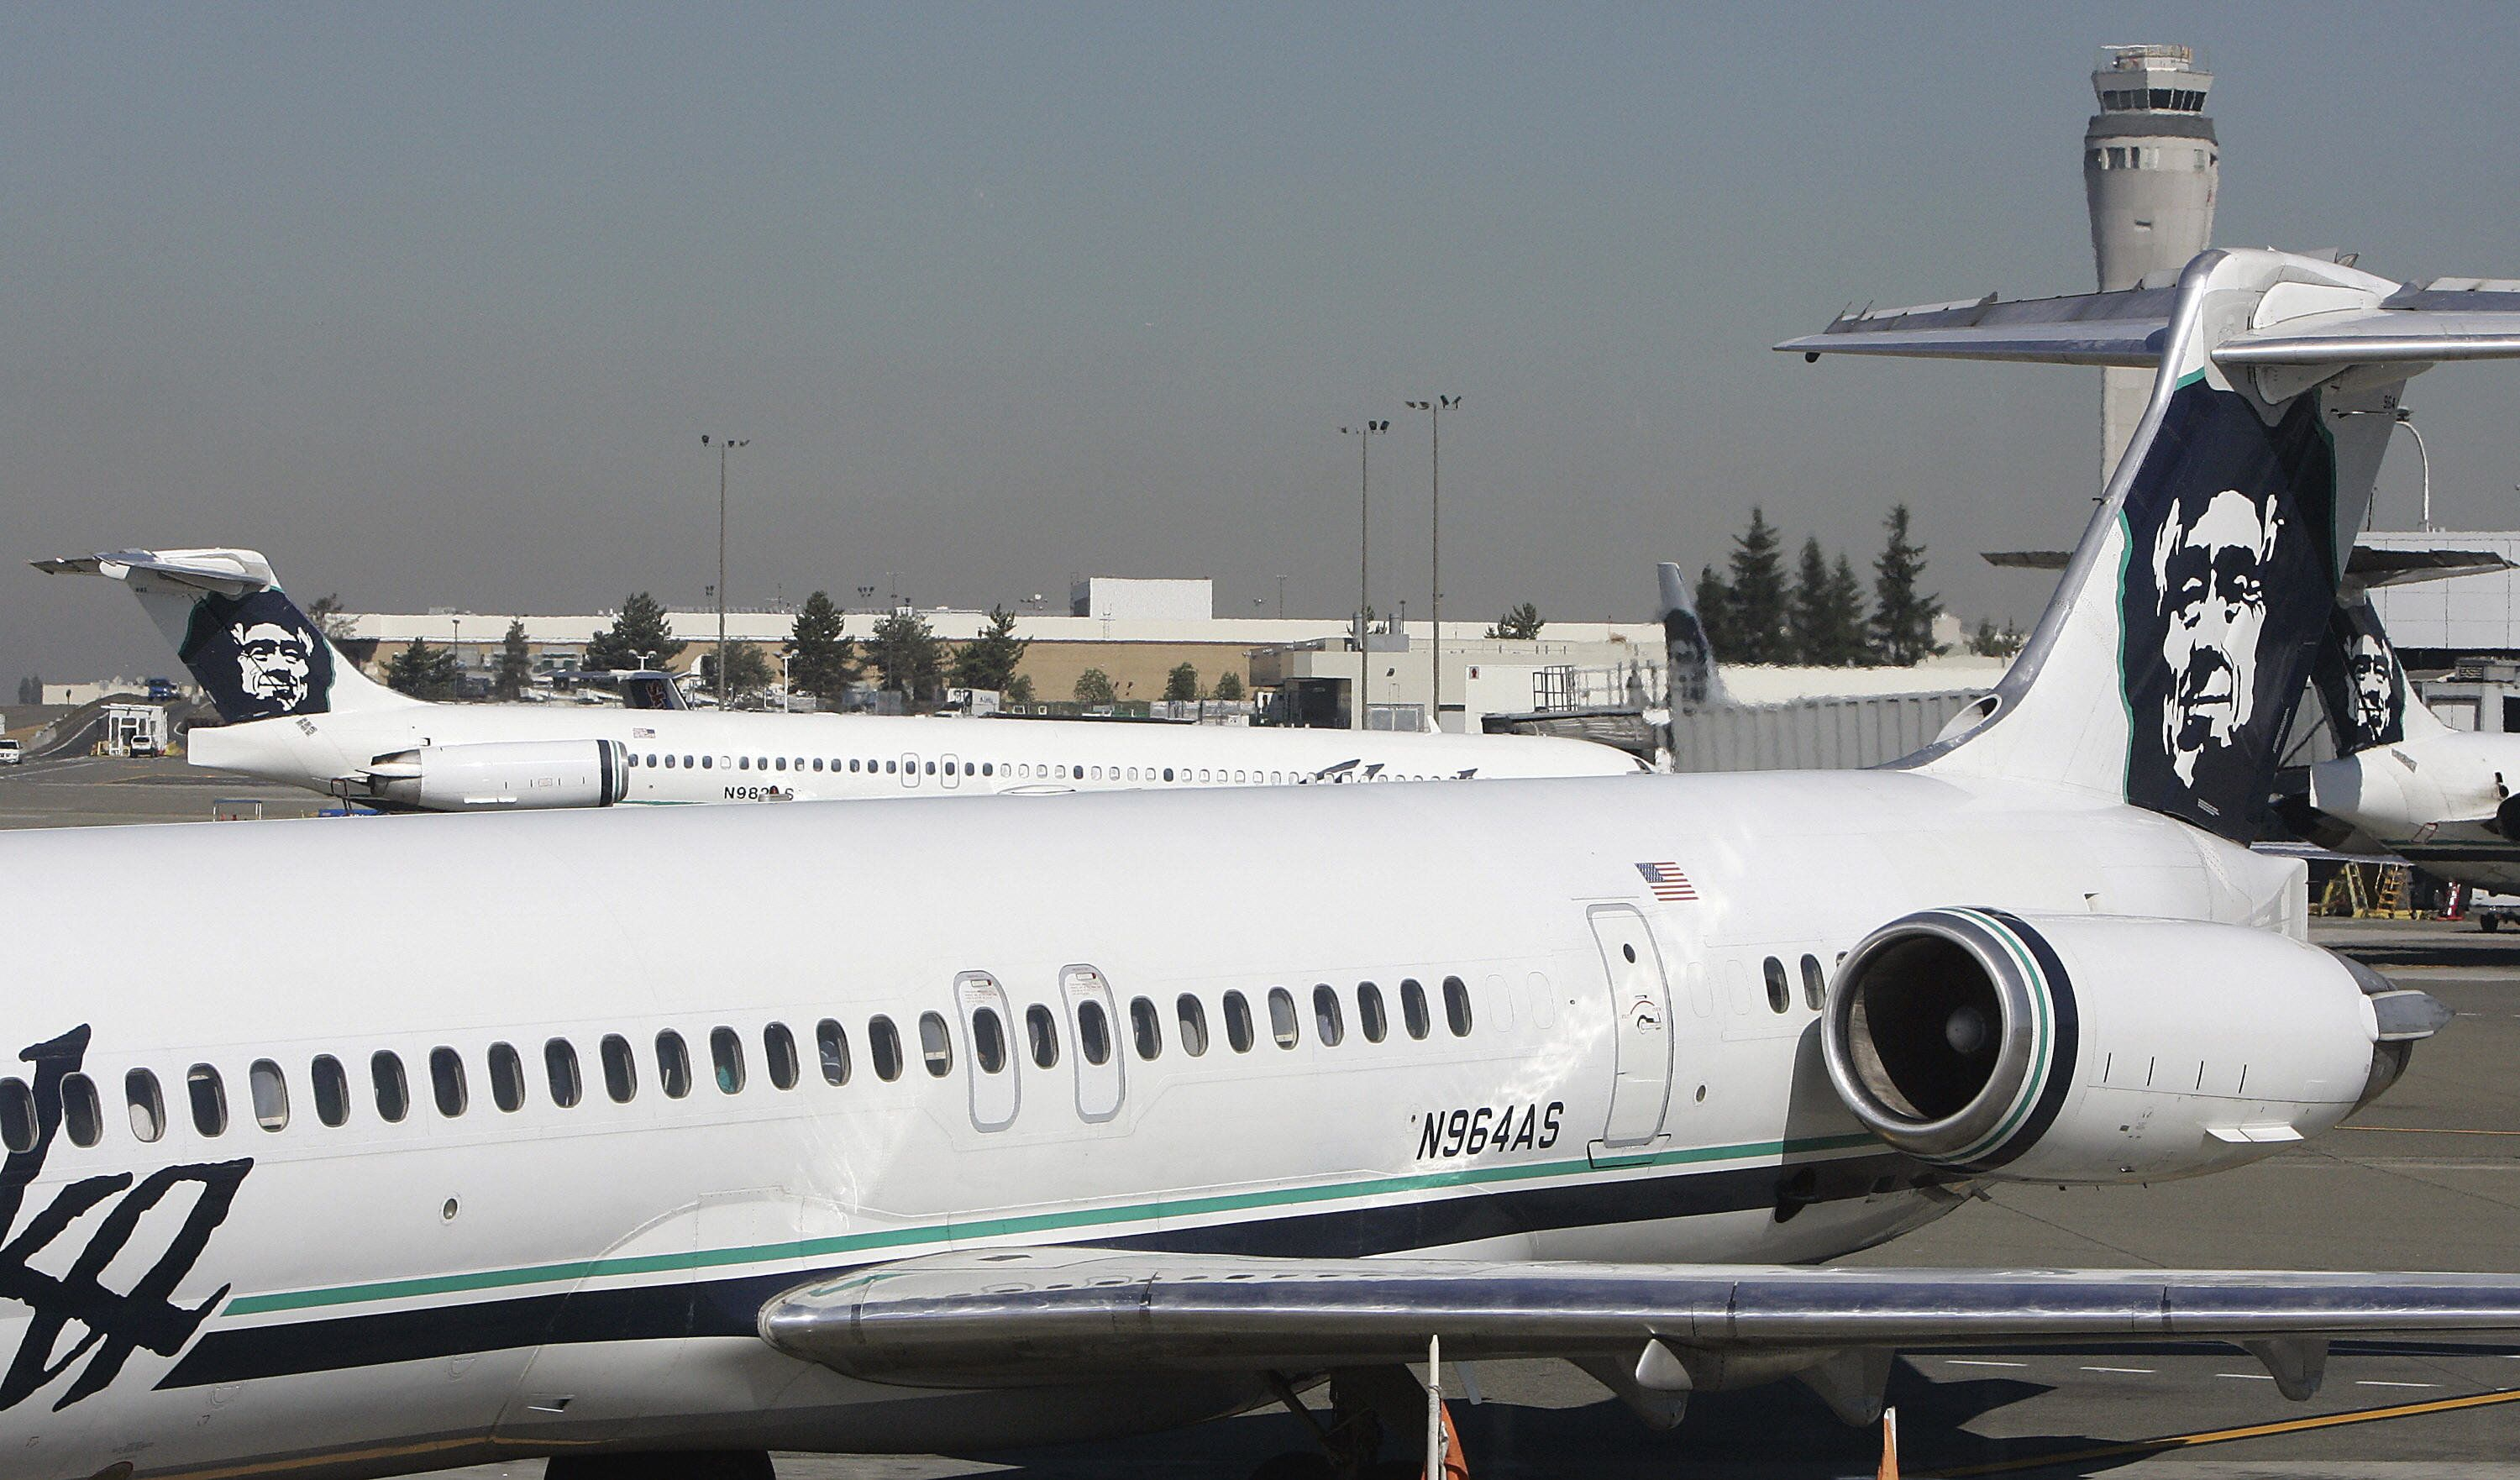 Plane takes off without authorization from Seattle airport, Alaska Airlines confirms